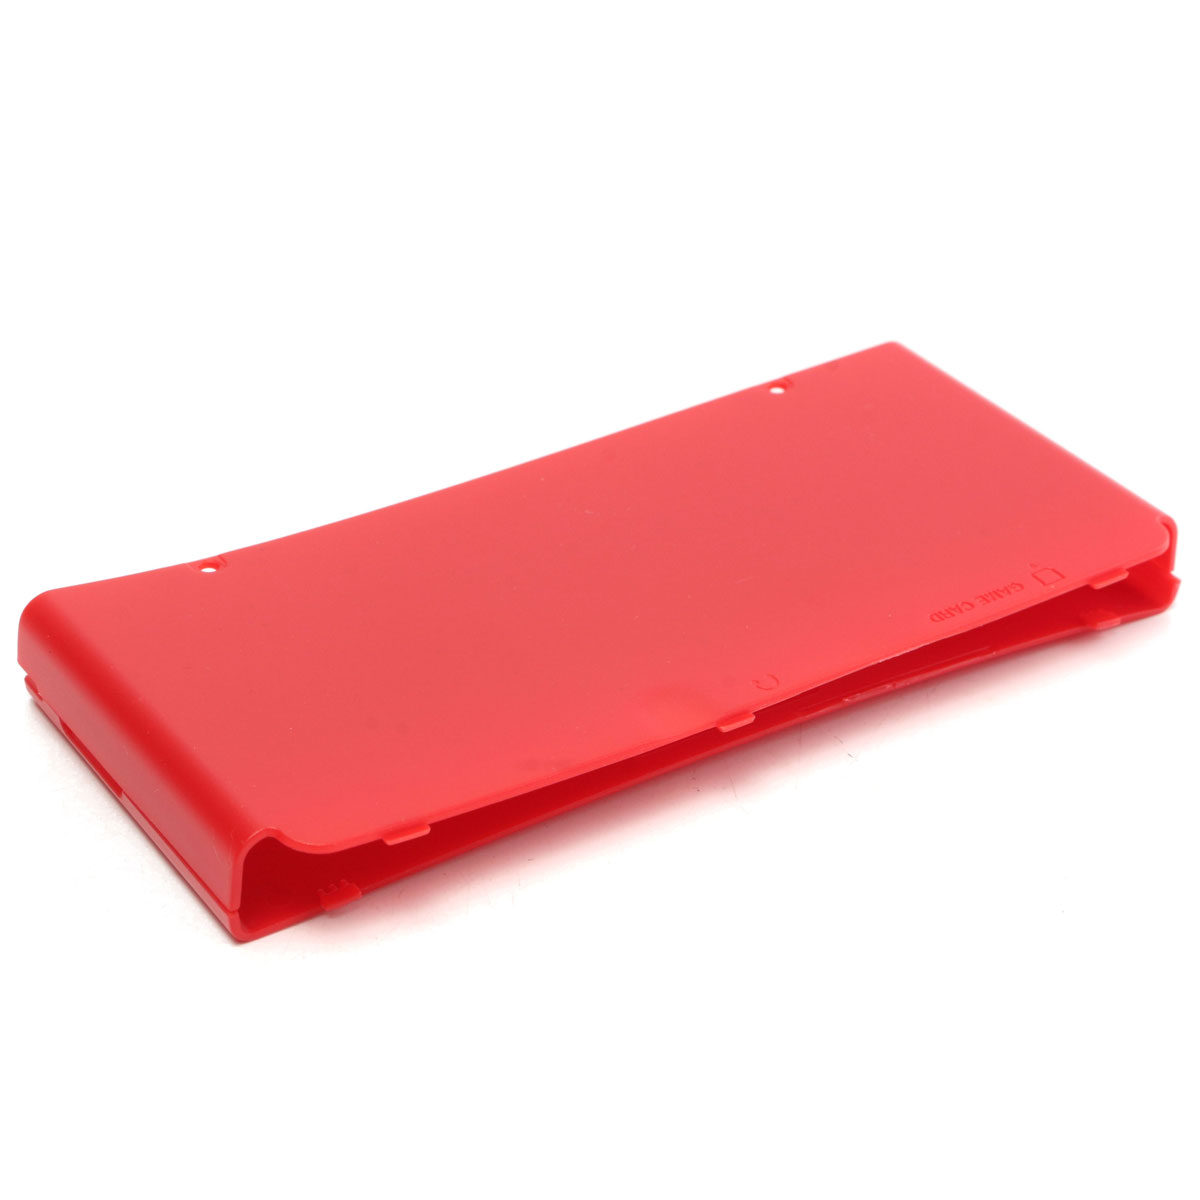 Plastic Replacement Protective Case Cover Lid for New Nintendo 3DS Video Game